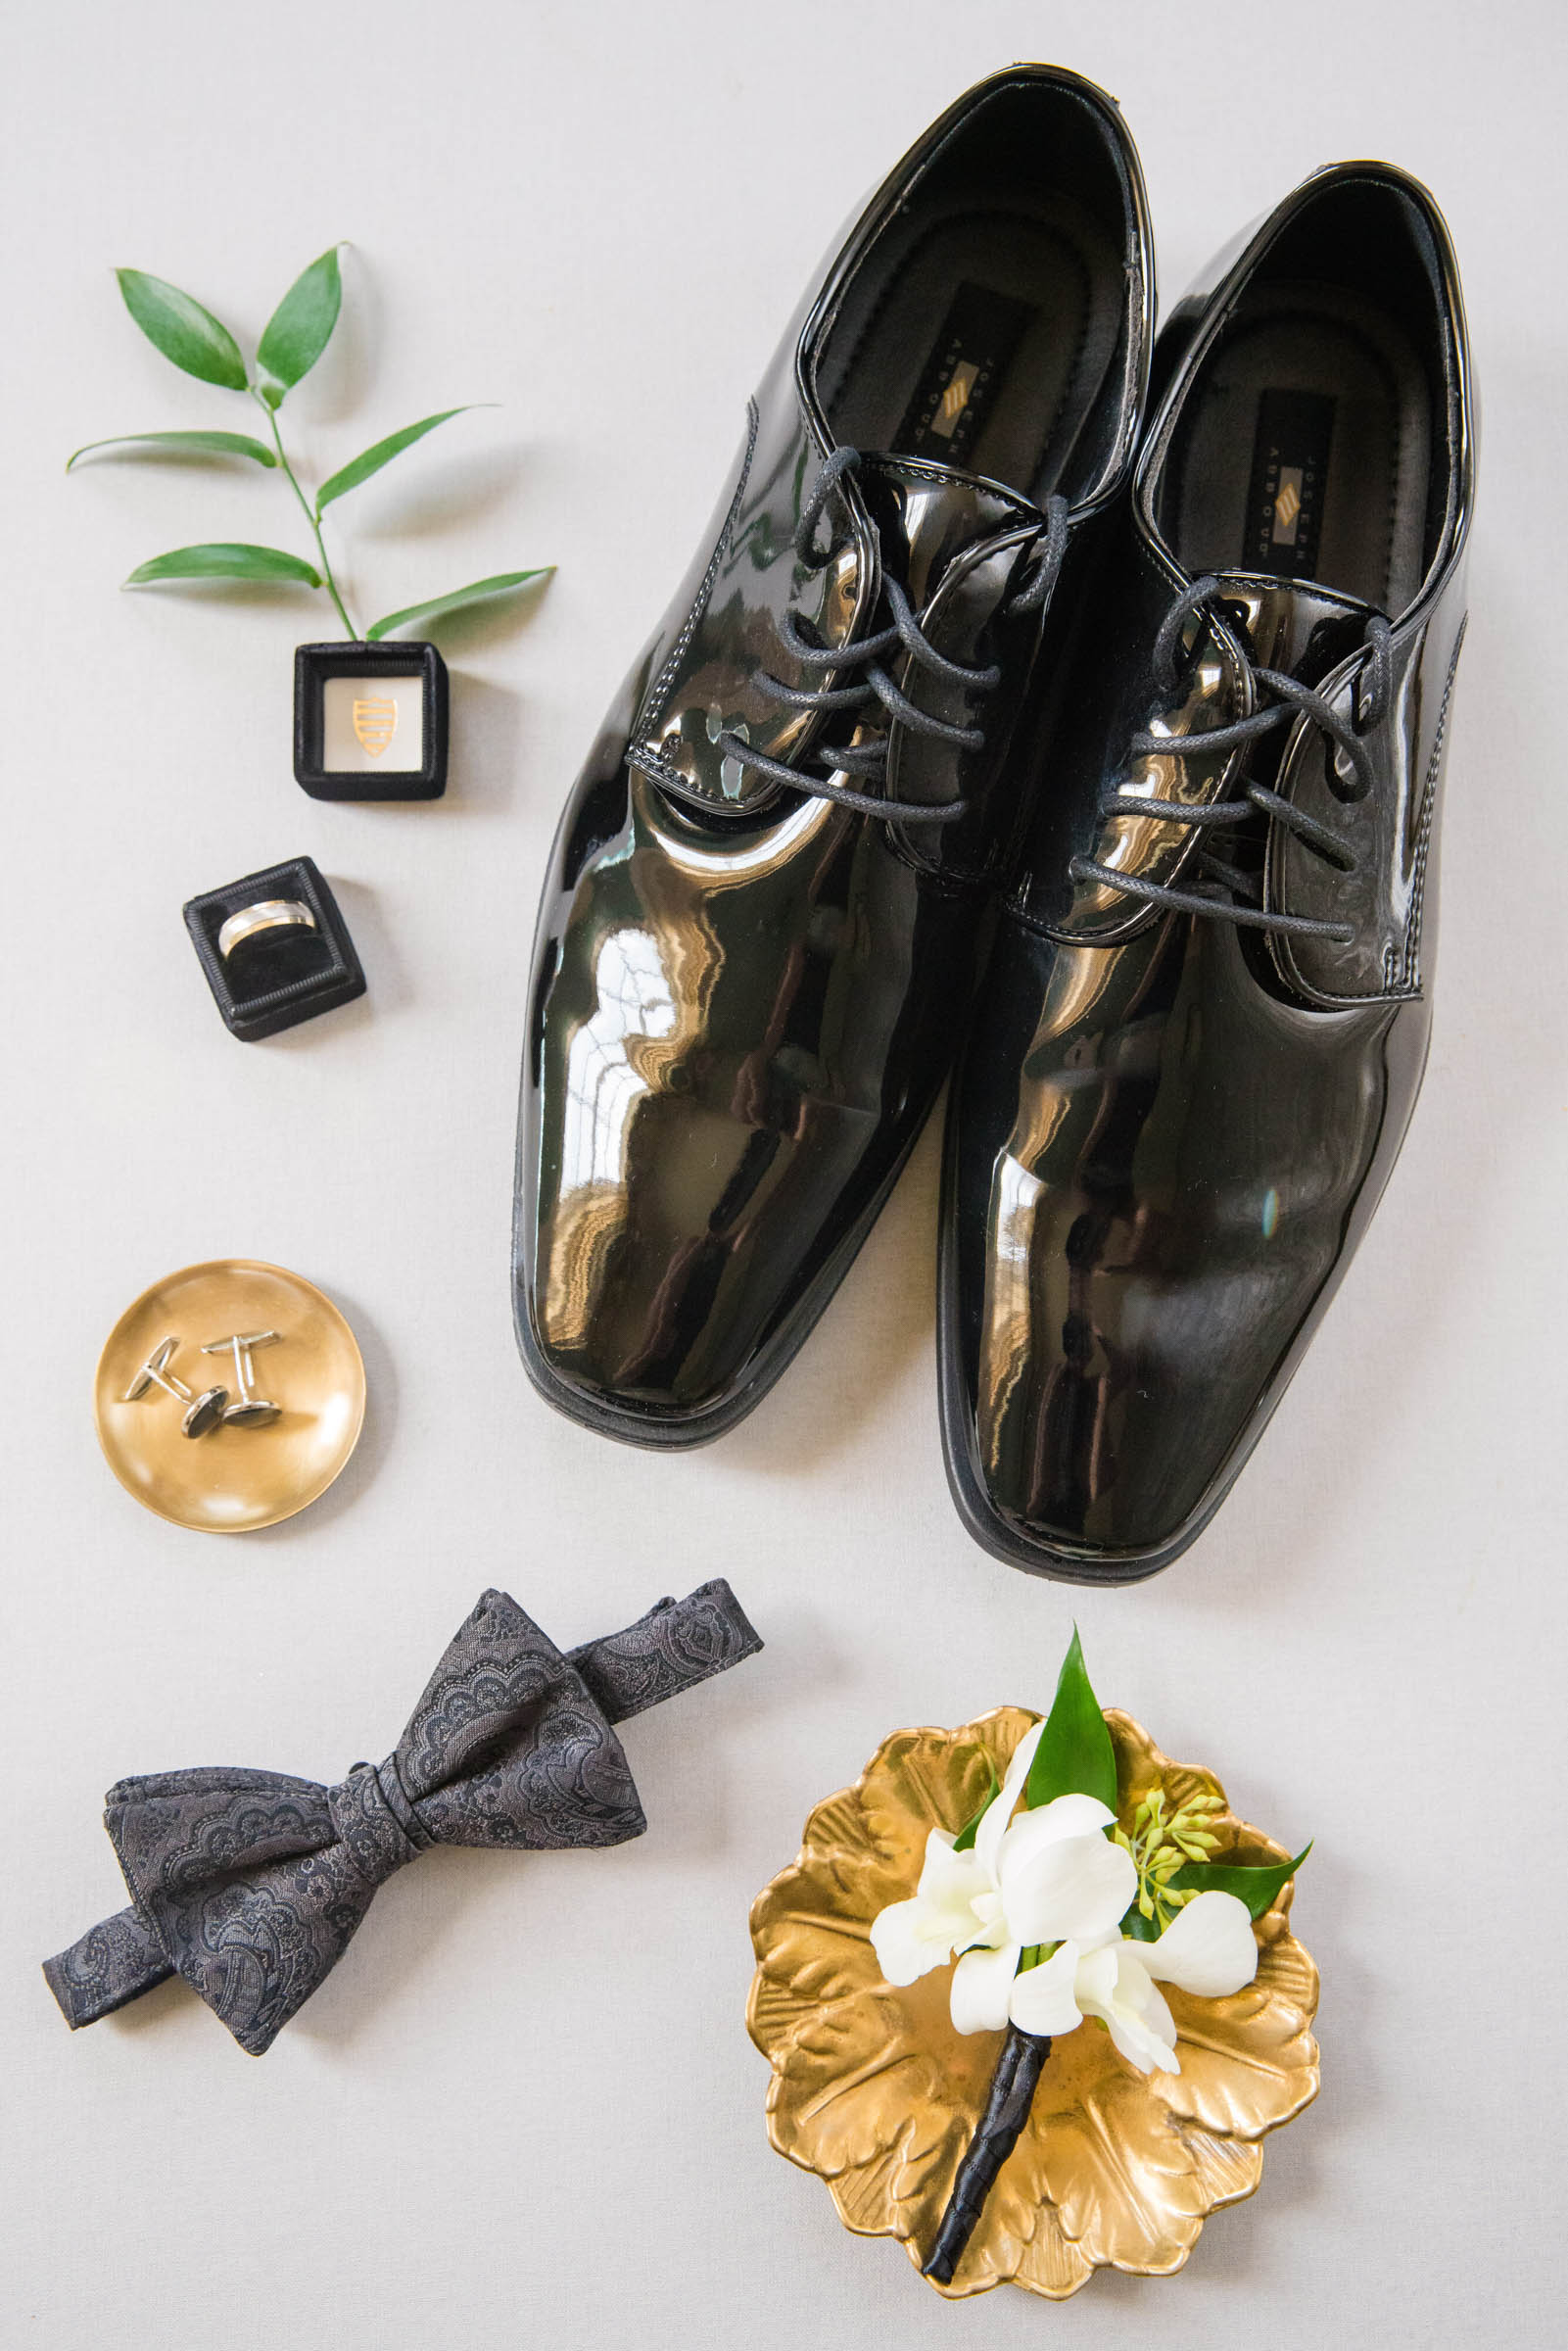 Flatlay of grooms shoes and accessories - photo by Dana Cubbage Weddings